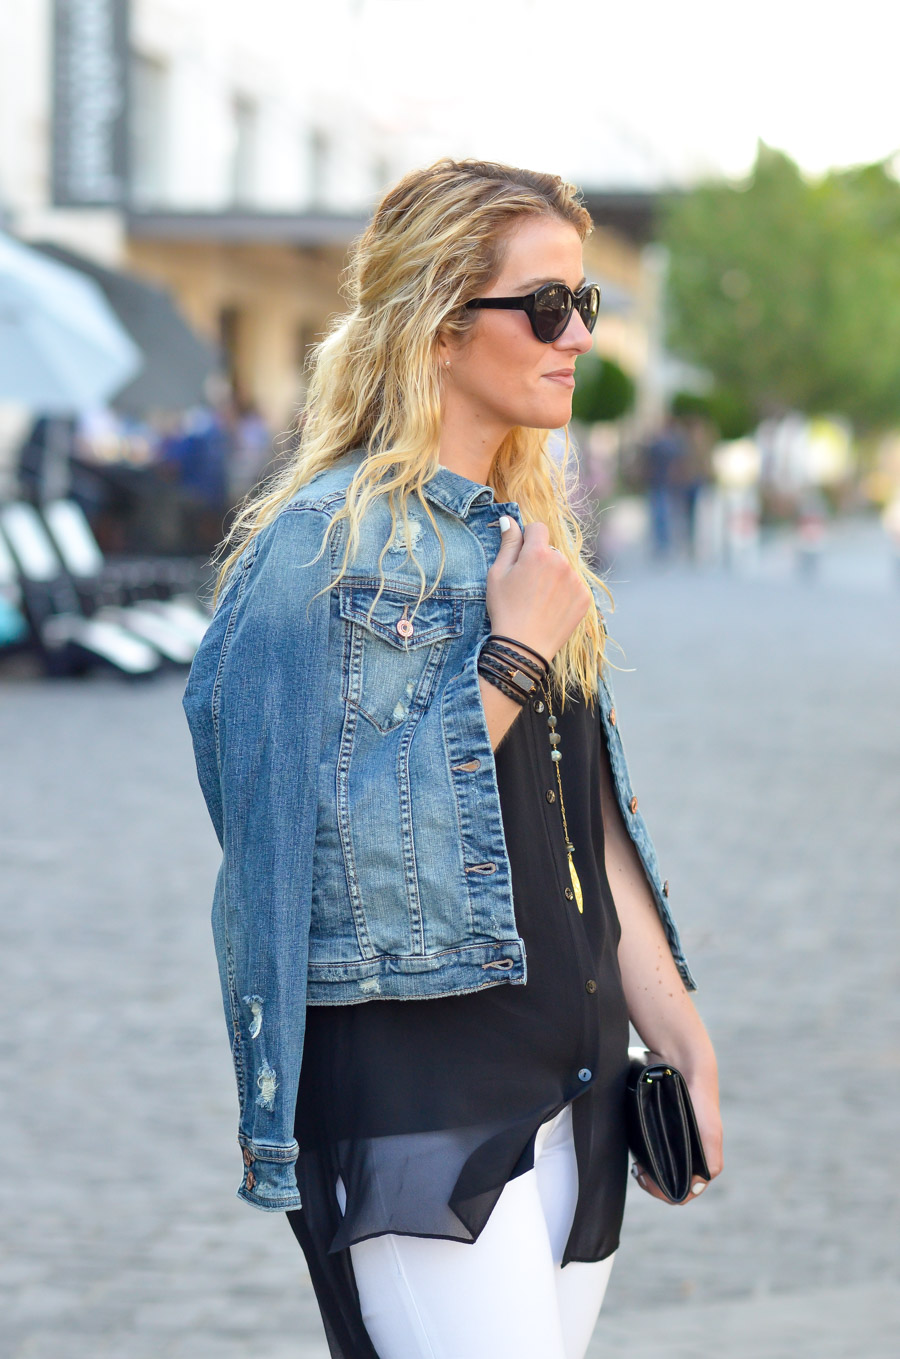 Black Top with White Jeans and Denim JacketOutfit